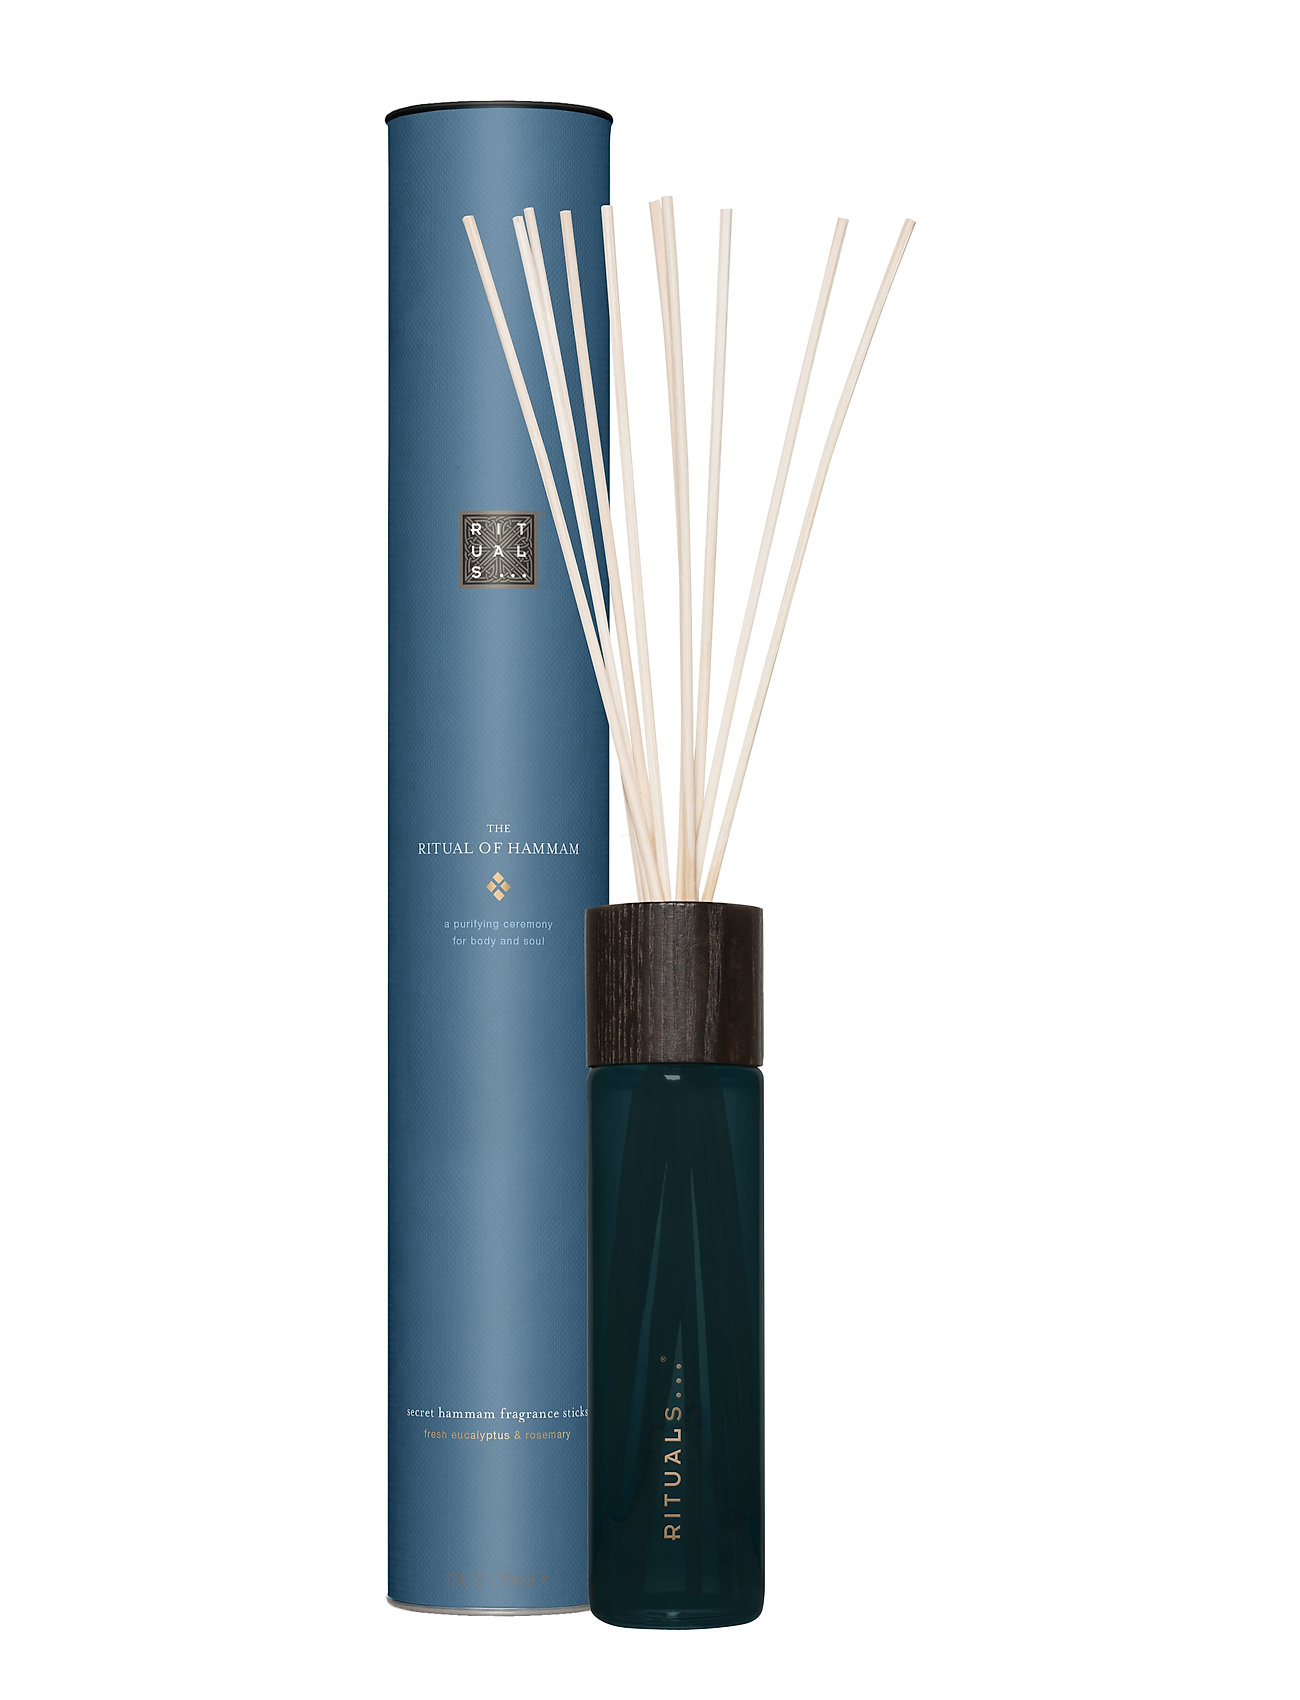 Image of The Ritual Of Hammam Fragrance Sticks Duftspray Til Hjemmet Nude Rituals (3334482343)